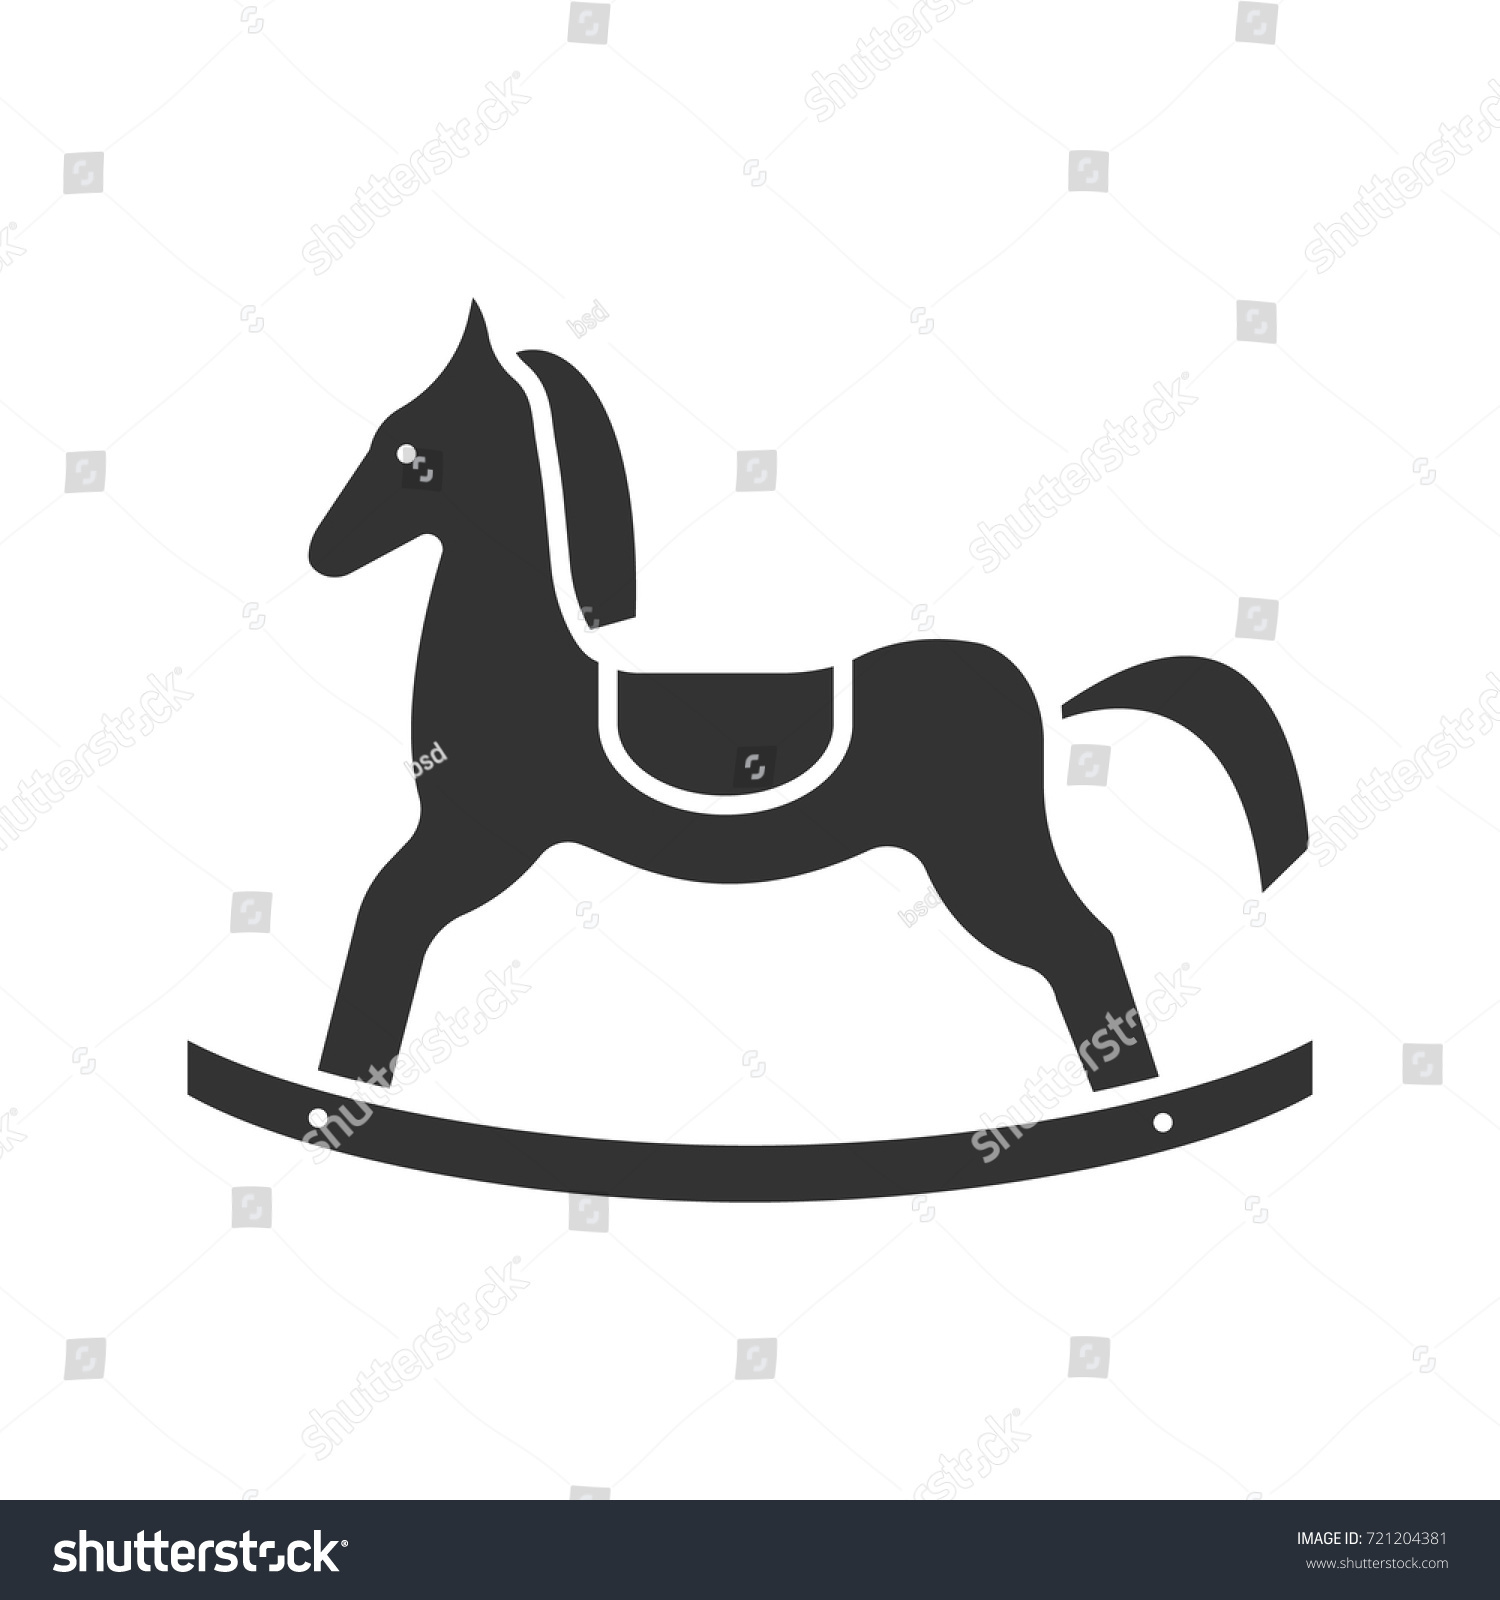 Rocking Horse Glyph Icon Silhouette Symbol Stock Vector Royalty